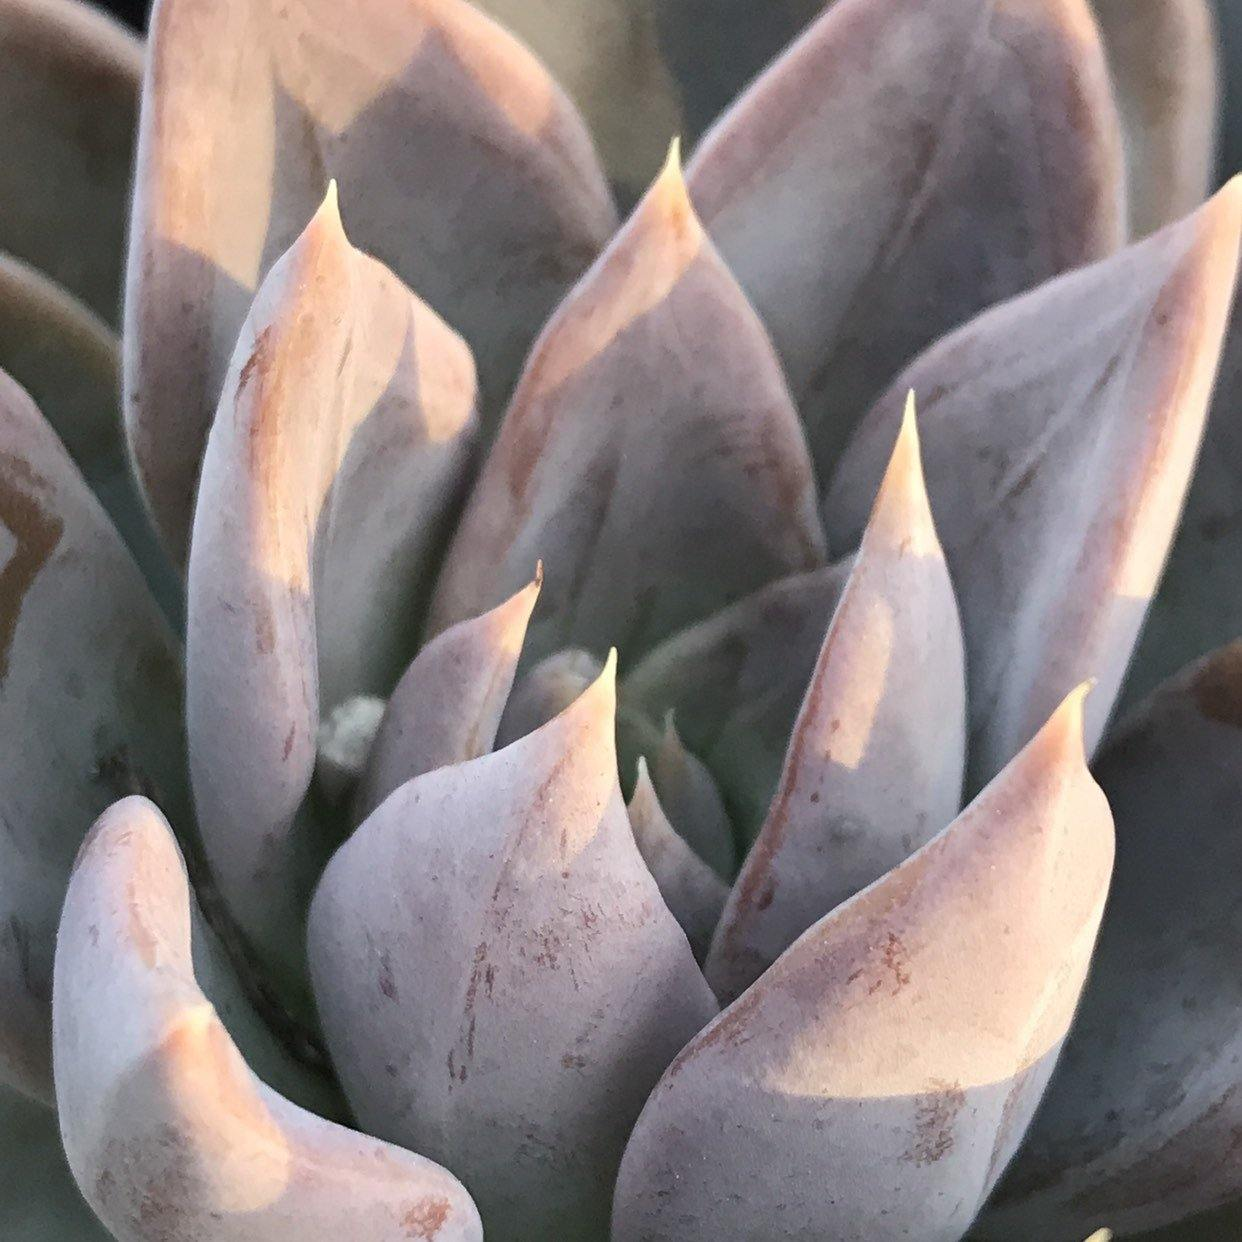 Rare Echeveria 'Silver Queen' succulent live plant gift, 4 INCH, Zensability Online Plant Nursery, Large full rosette of thich triangular silver-lavendar colored leaves